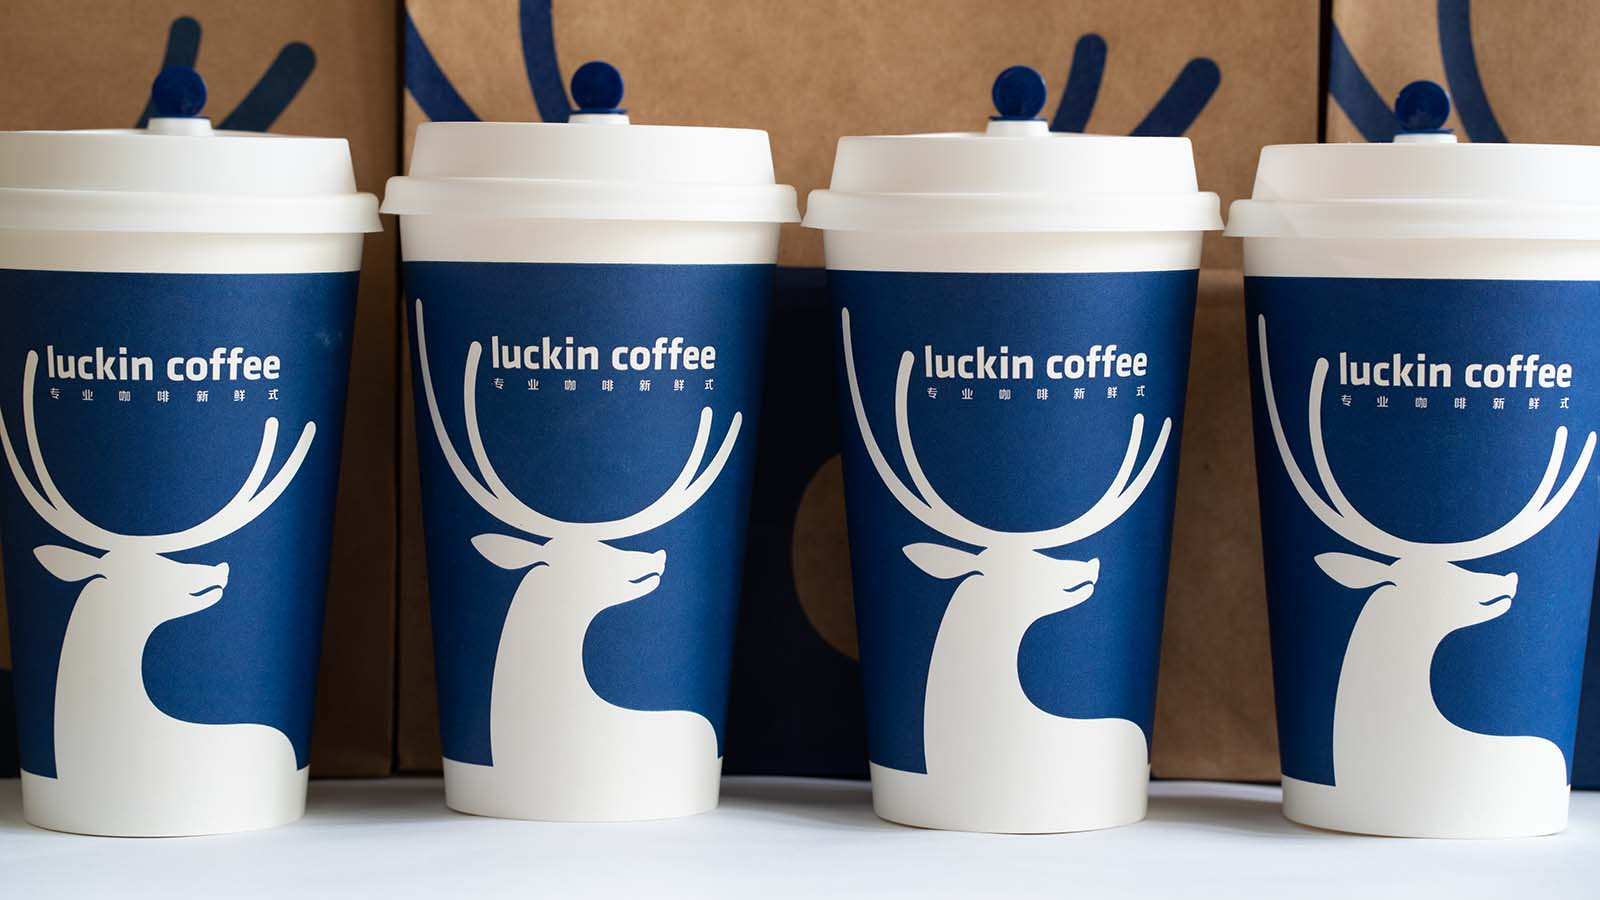 LK Stock: Luckin Coffee Is Weak Compared to Starbucks | InvestorPlace